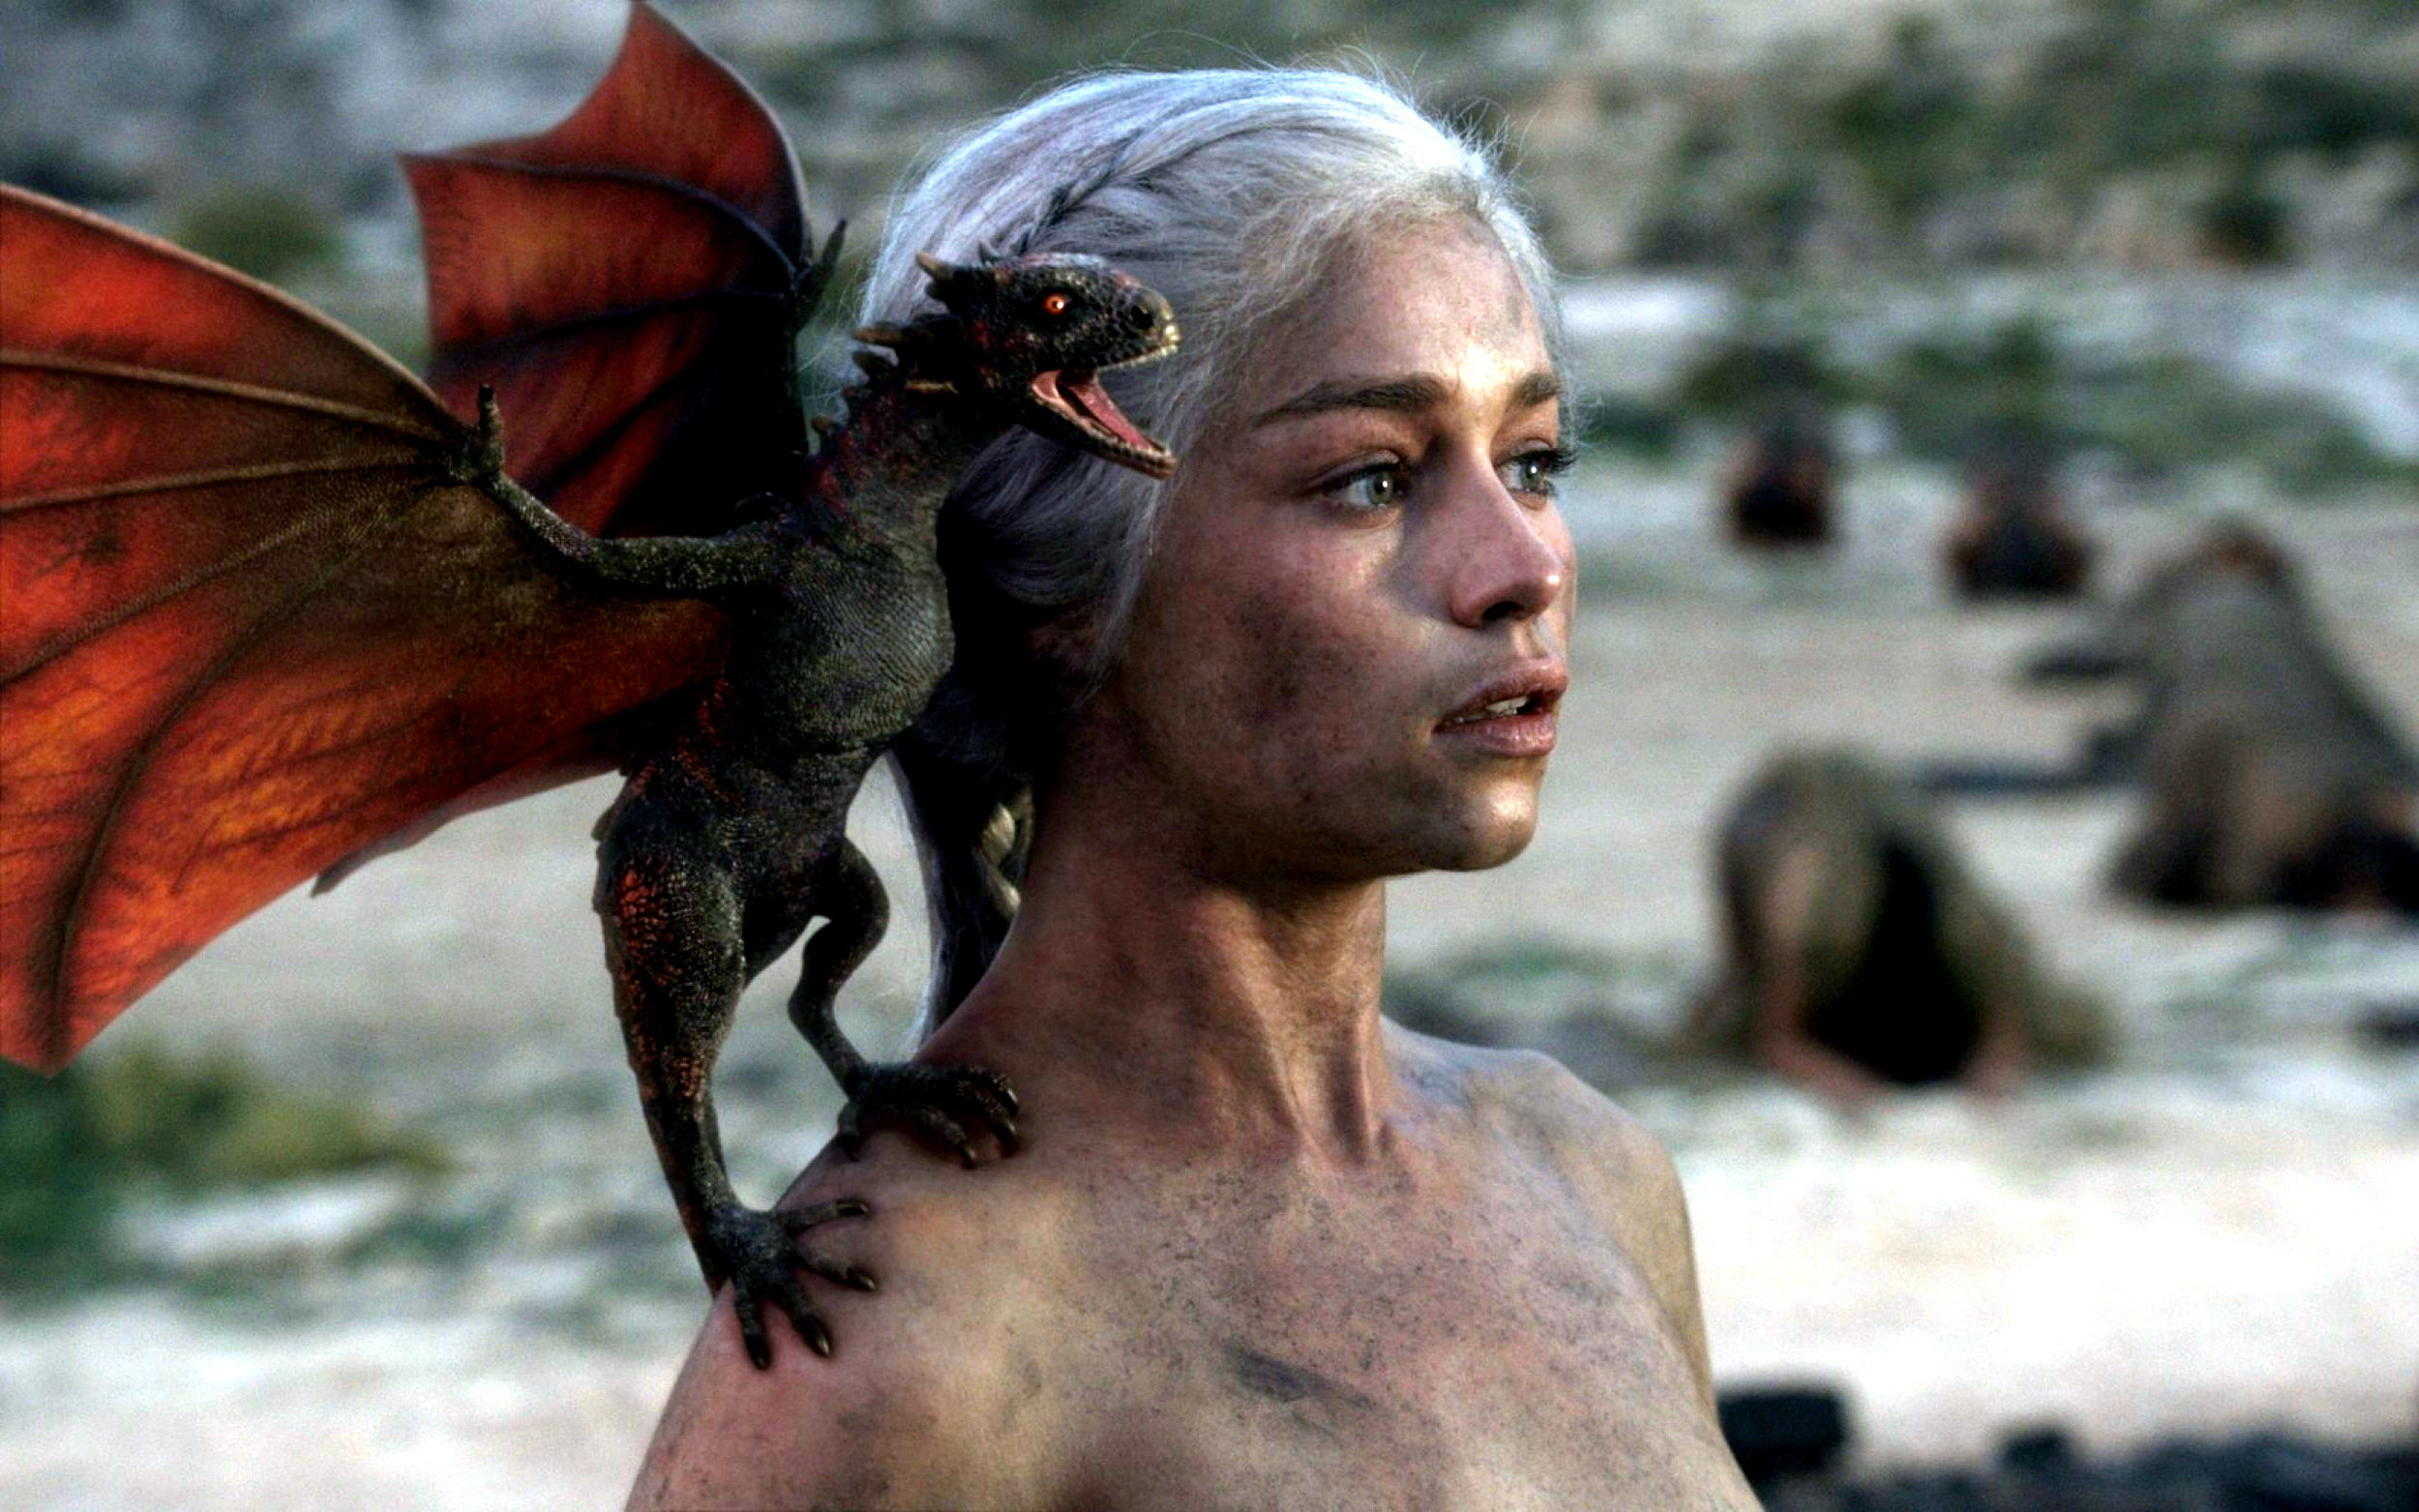 Daenerys_and_dragon.jpg